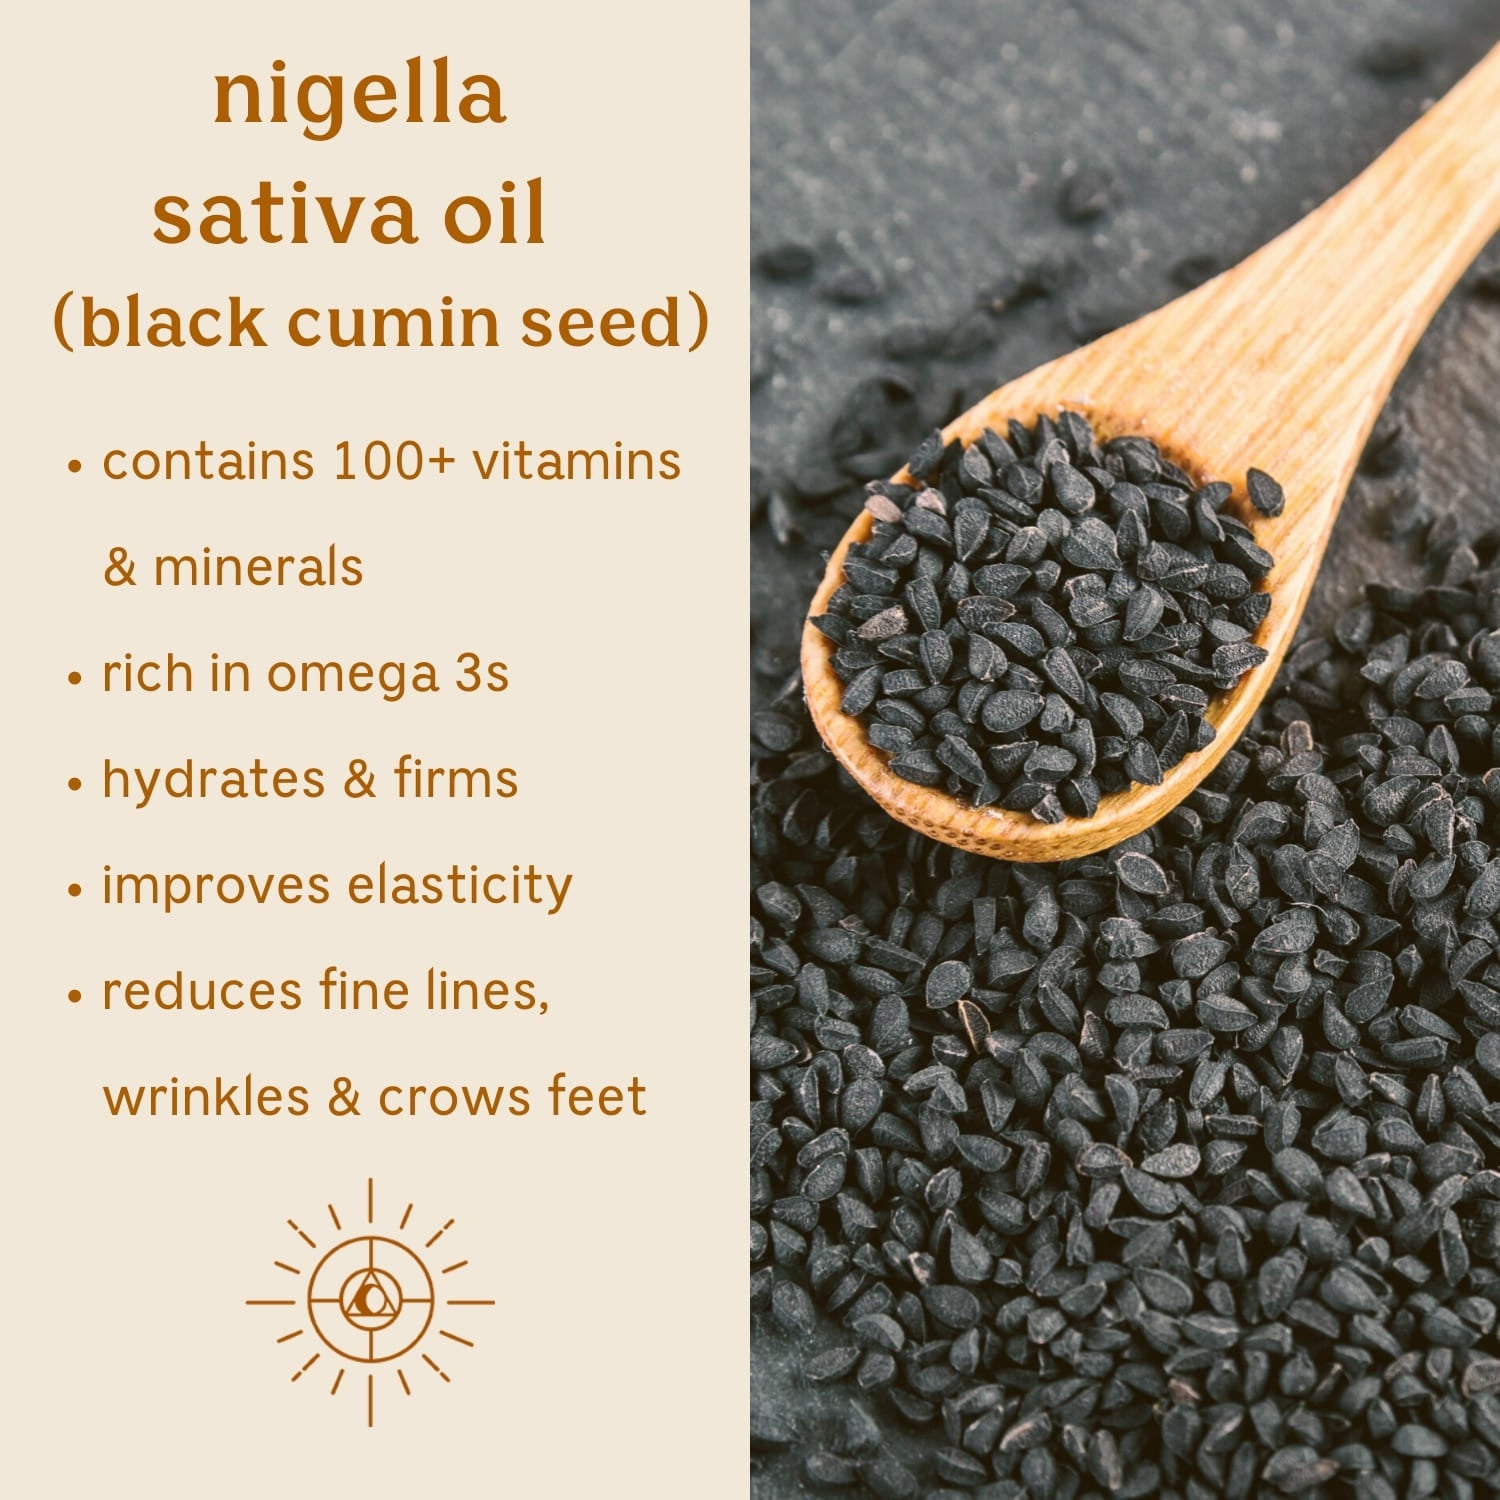 Solluna's Feel Good Eye Cream key ingredient benefit description. Nigella, Sativa Oil (black cumin seed): Contains 100+ vitamins & minerals, Rich in omega 3s, Hydrates & firms, Improves elasticity, Reduces fine lines, wrinkles & crows feet